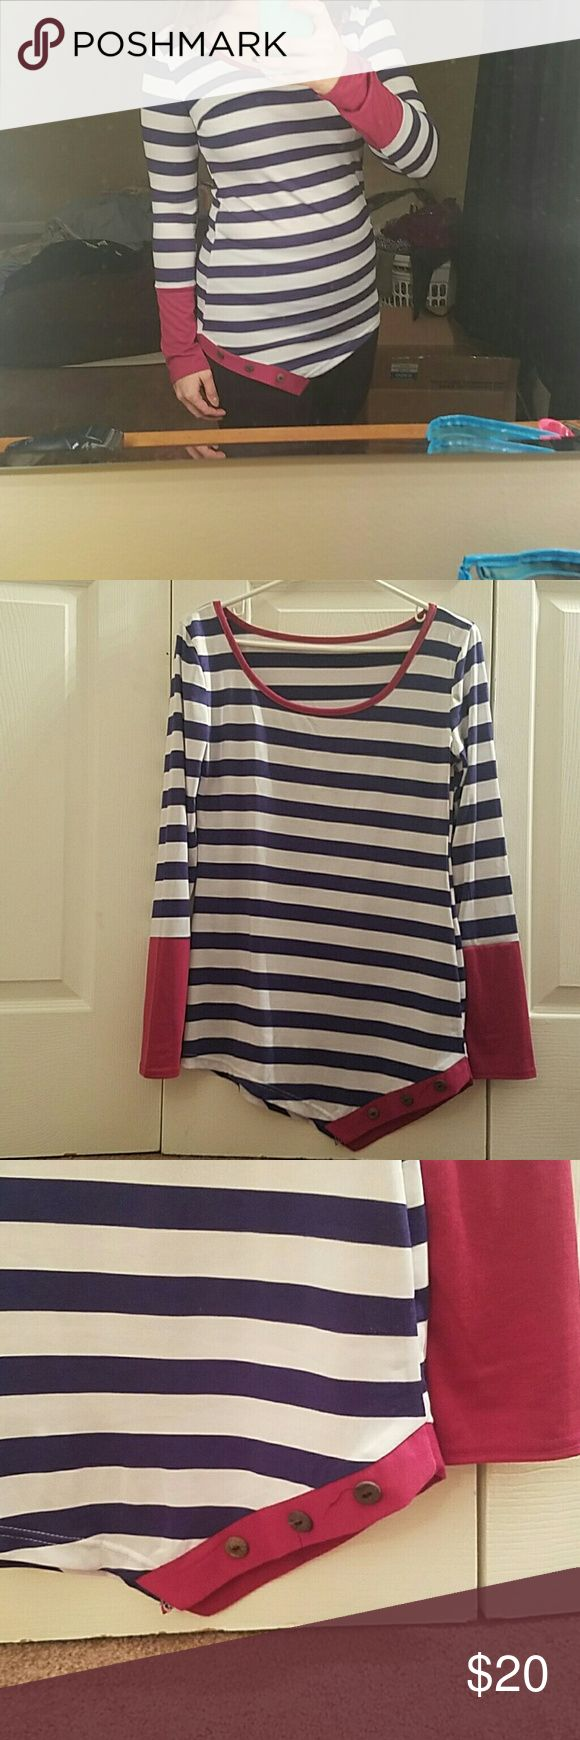 Retail stripped long sleeve shirt with buttons Bought for myself from a retail site but never ended up wearing it. Brand new but no tags or retail pavkaging. Navy and white stripes with magenta sleeves and collar. A symmetrical cut with three buttons. Tag says XL but runs small! I am typically a small/medium. It is stretchy though Tops Tees - Long Sleeve